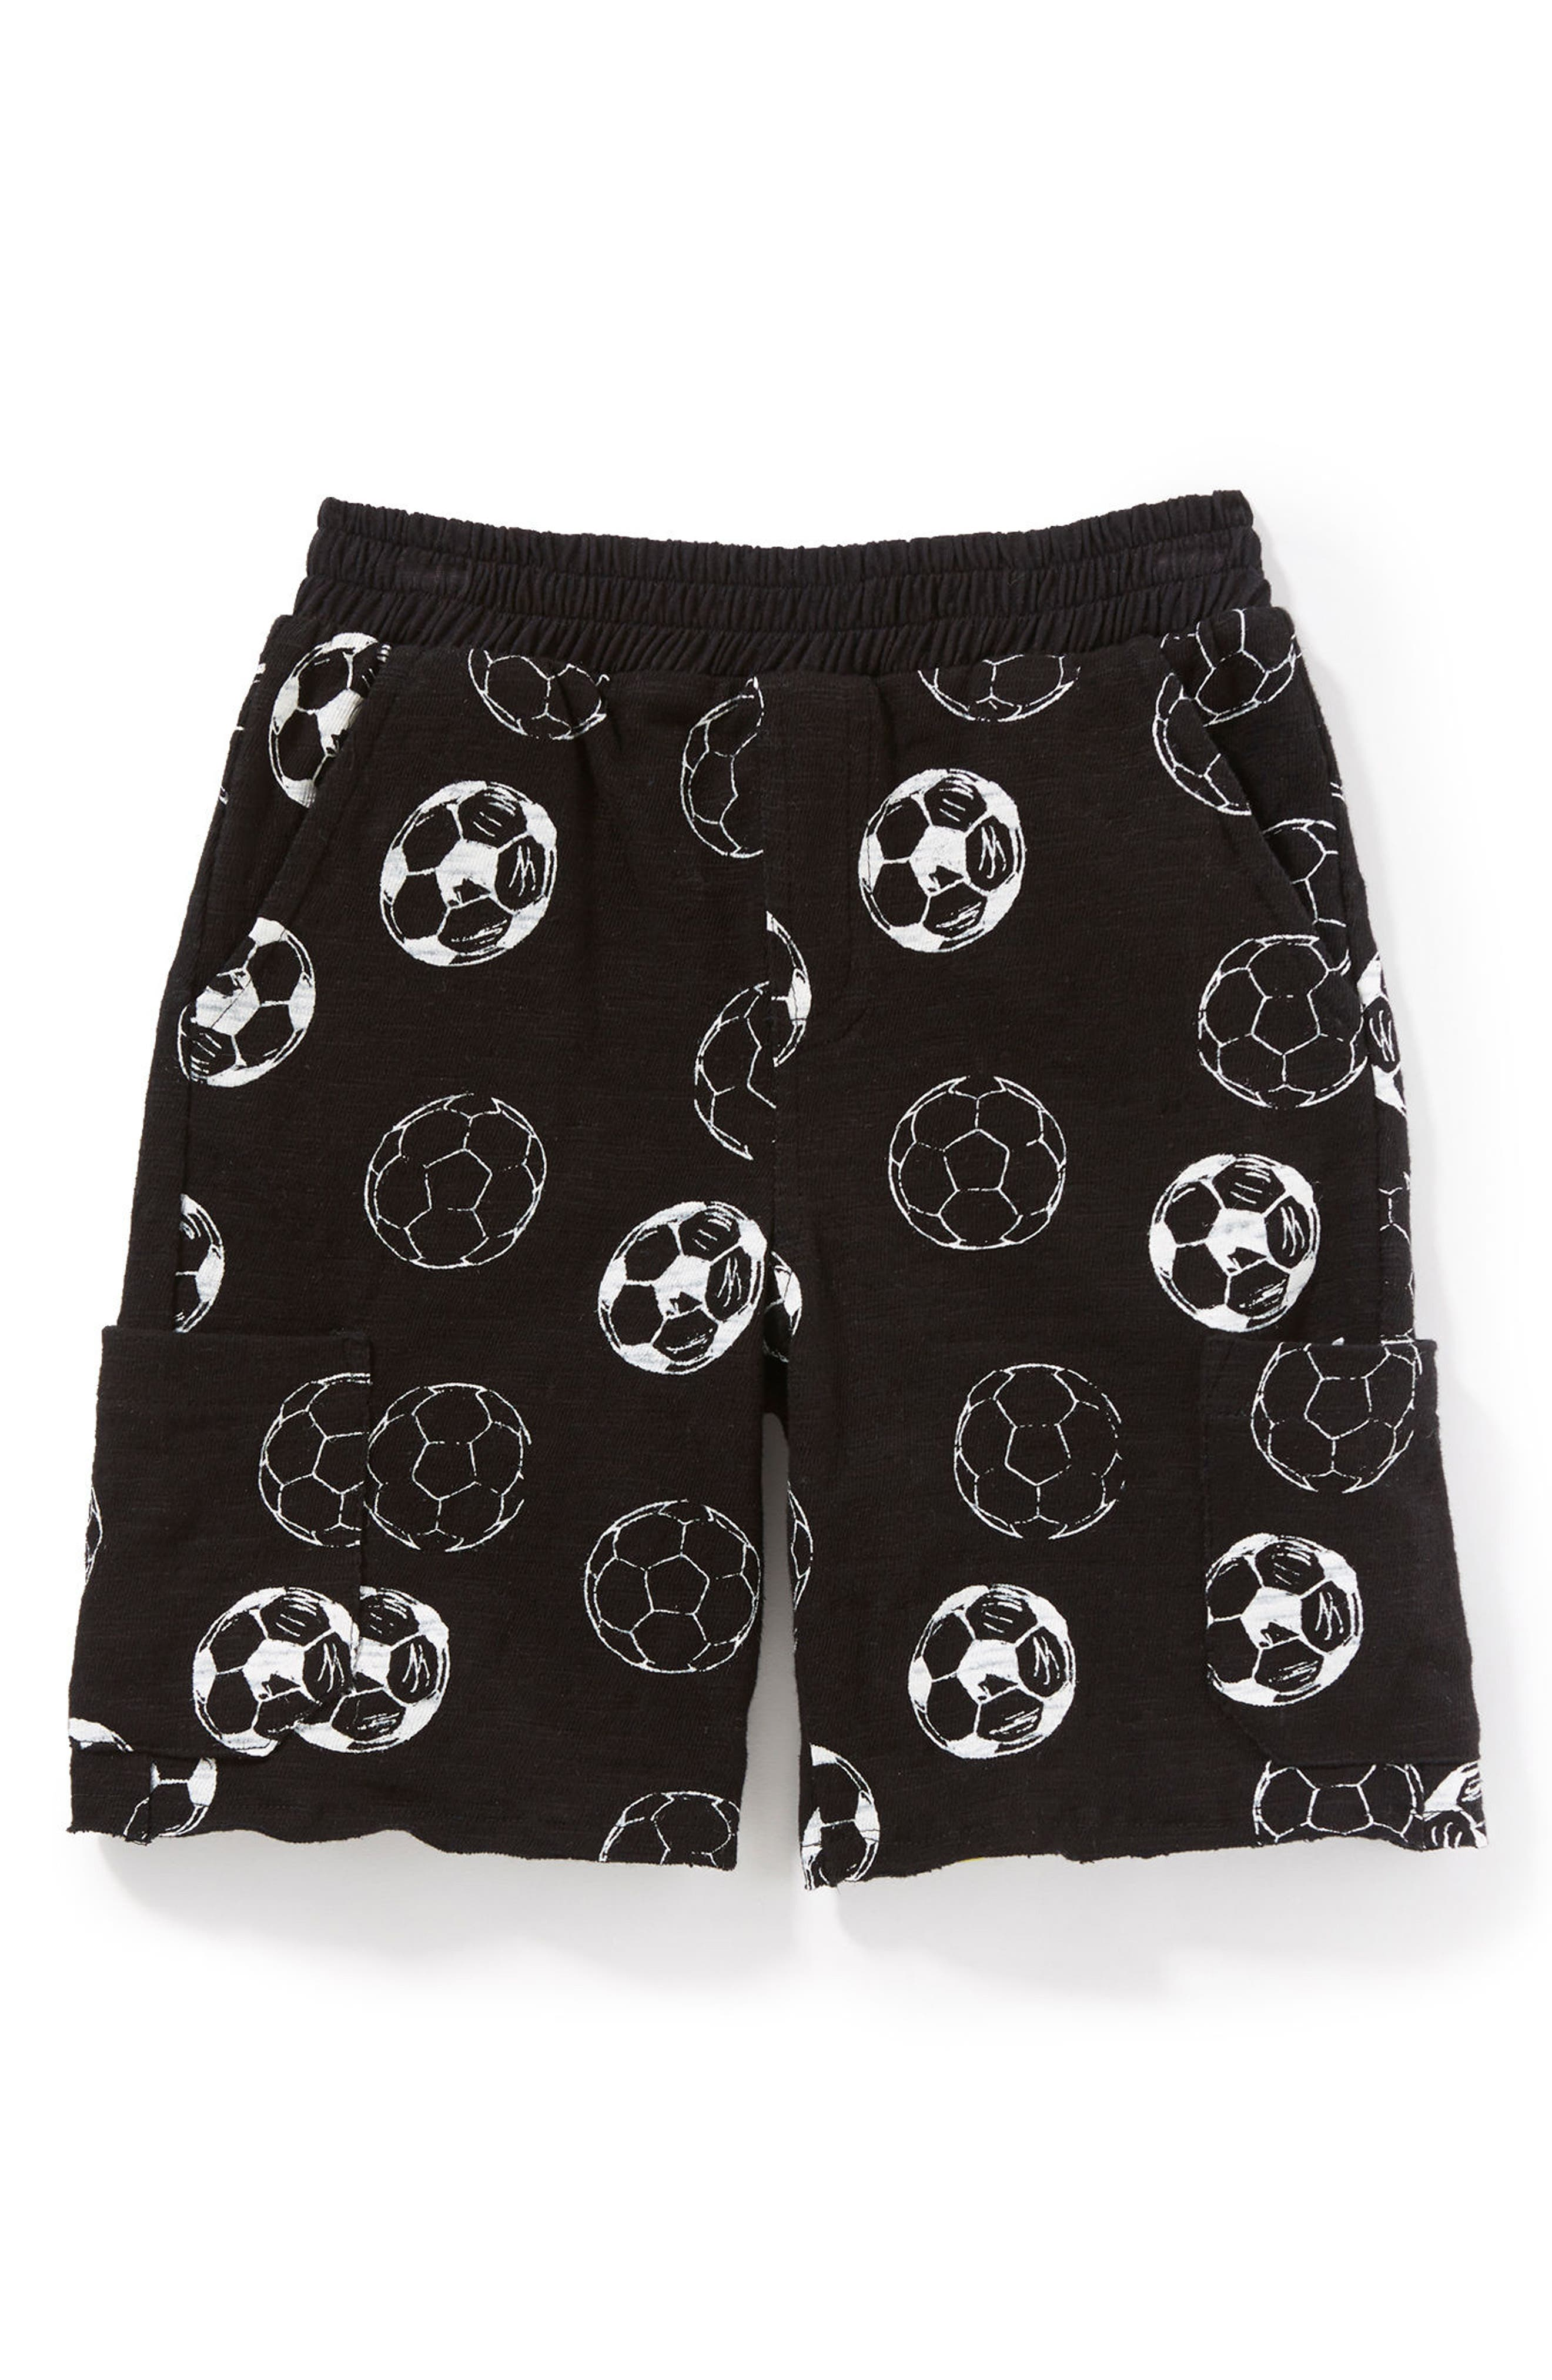 Soccer Ball Shorts,                         Main,                         color, 001